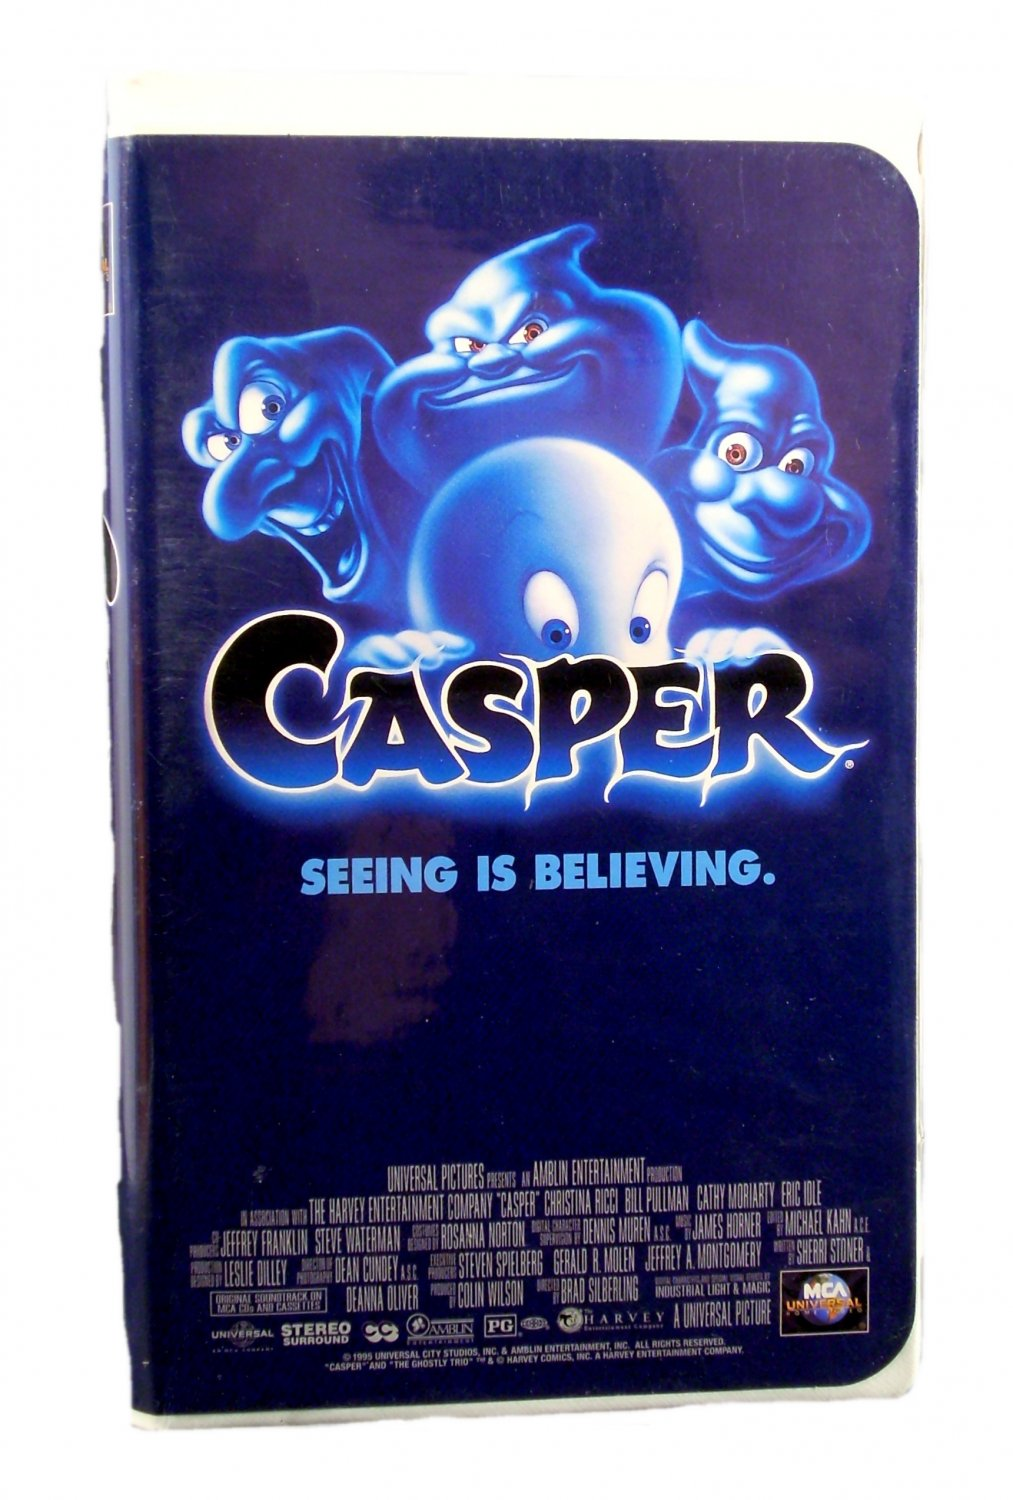 Casper Seeing Is Believing VHS 1997